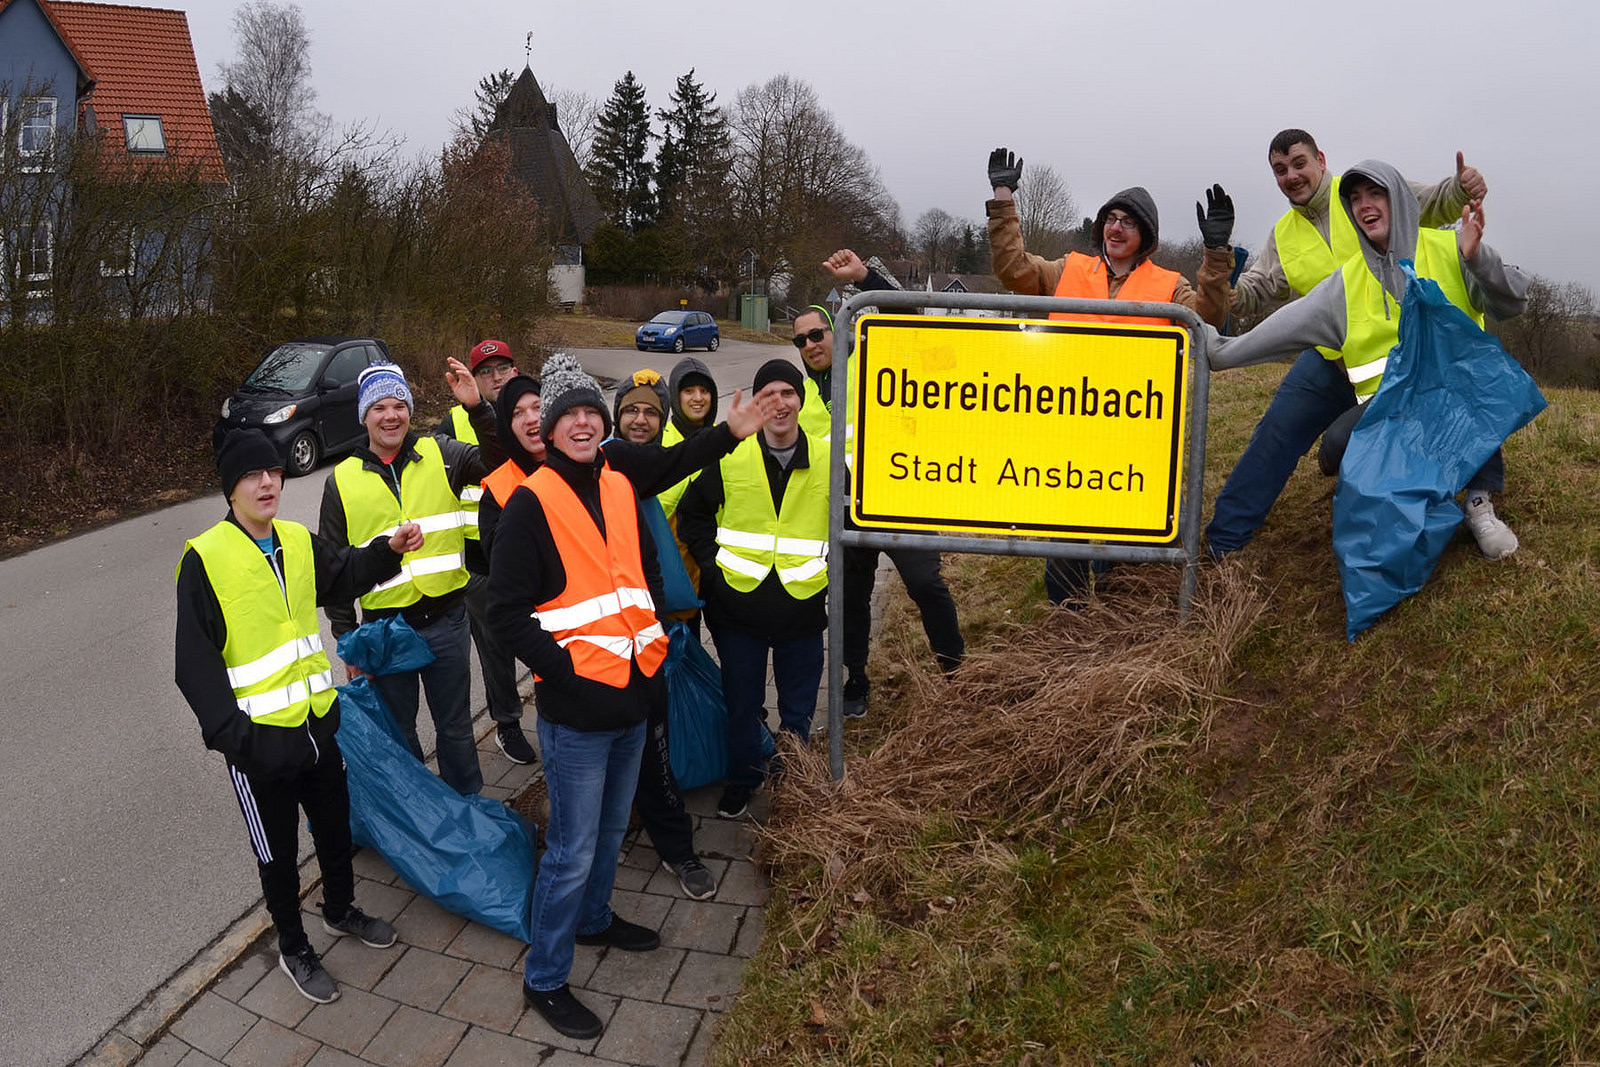 USAG Ansbach Soldiers pitch-in to help clean up local neighborhoods, roadways